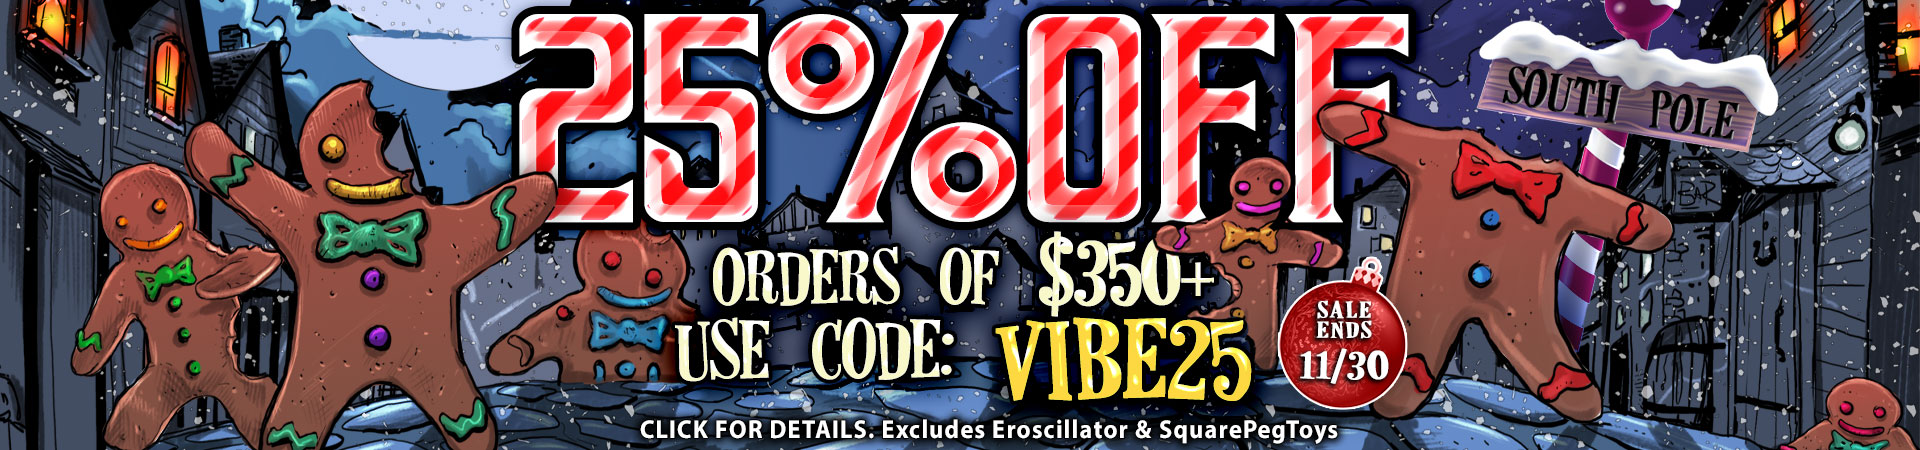 25% OFF ORDERS OF $350+ USE CODE: VIBE25